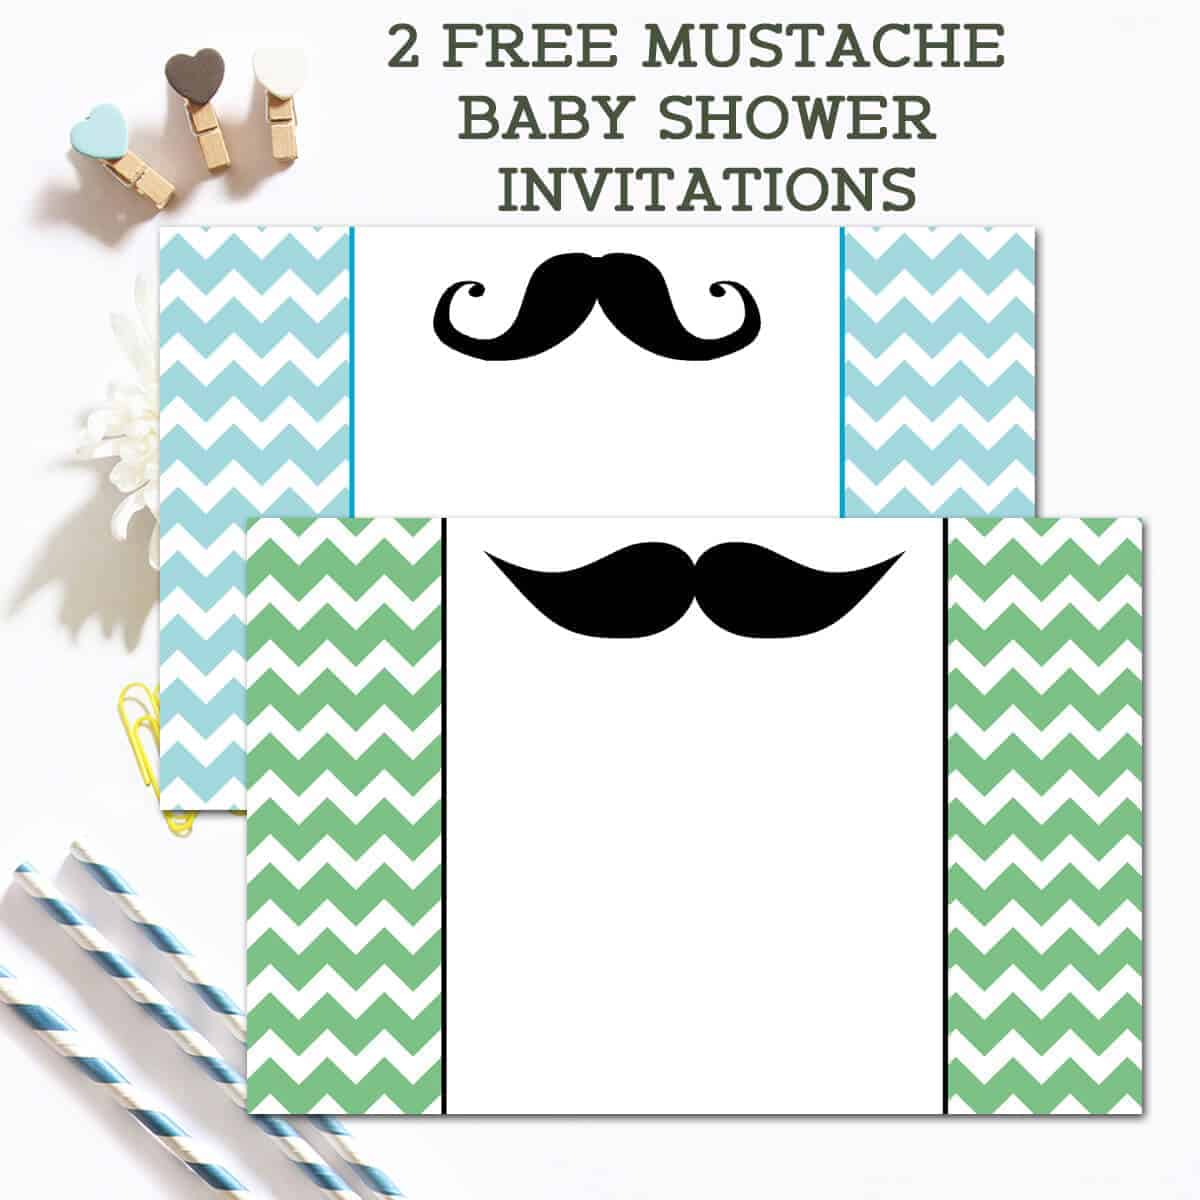 Free mustache baby shower invitations ilonas passion filmwisefo